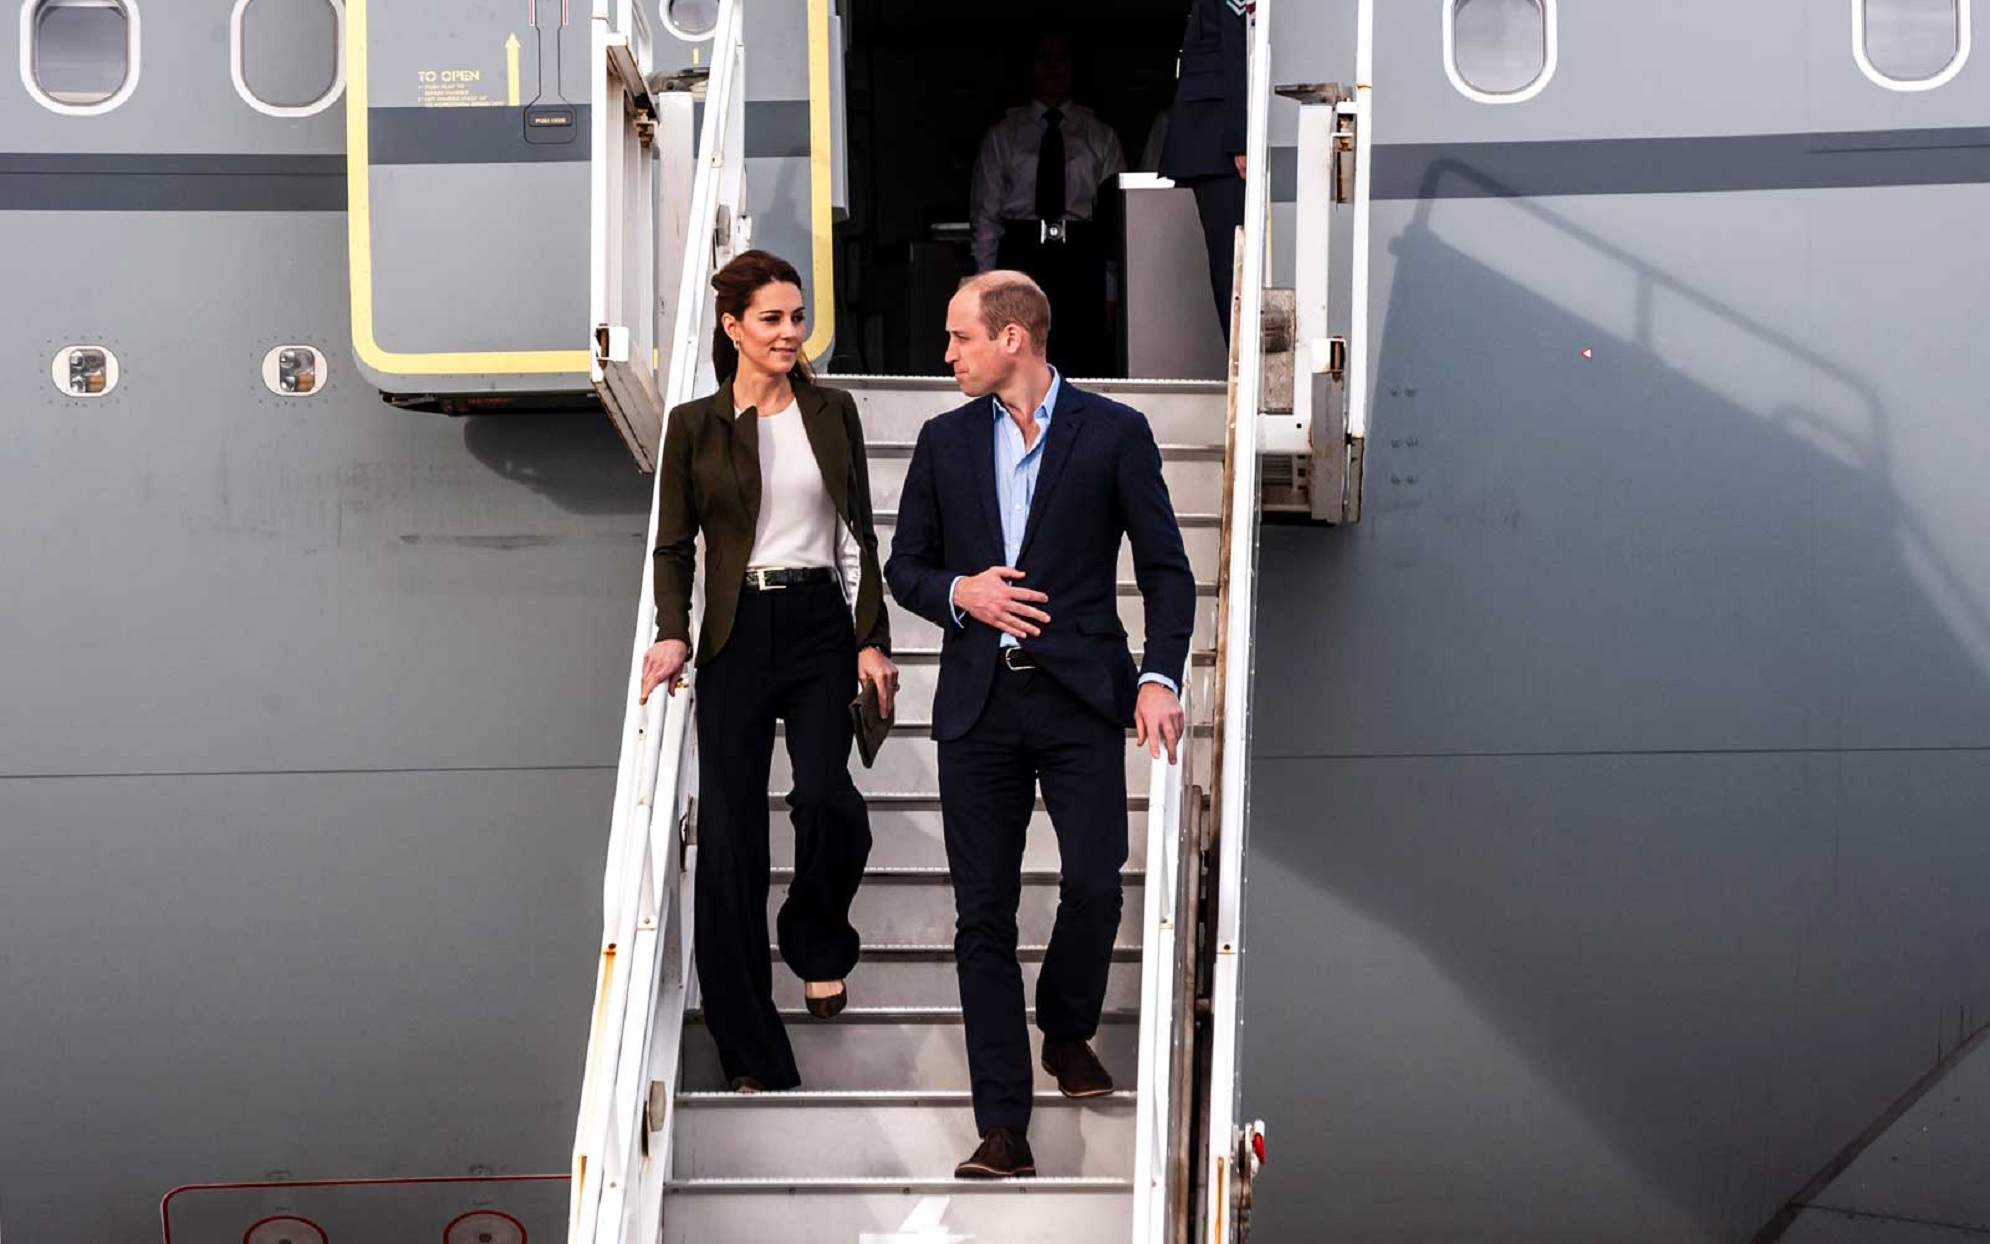 Kate Middleton and Prince William Walking Down Stairs of Plane